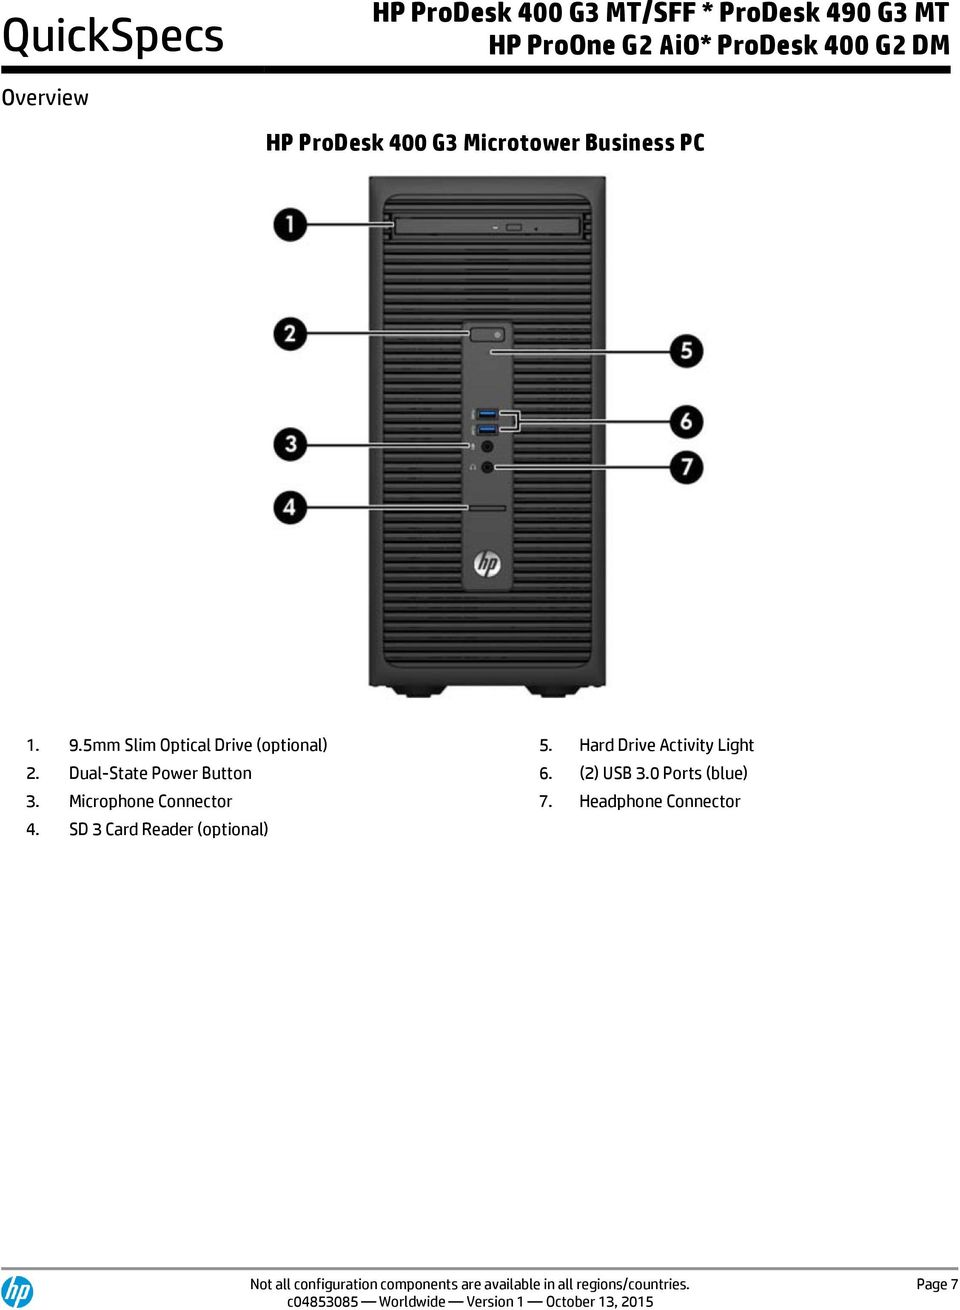 Hp prodesk 600 g3 sff sccm drivers | Solved: HP Prodesk 600